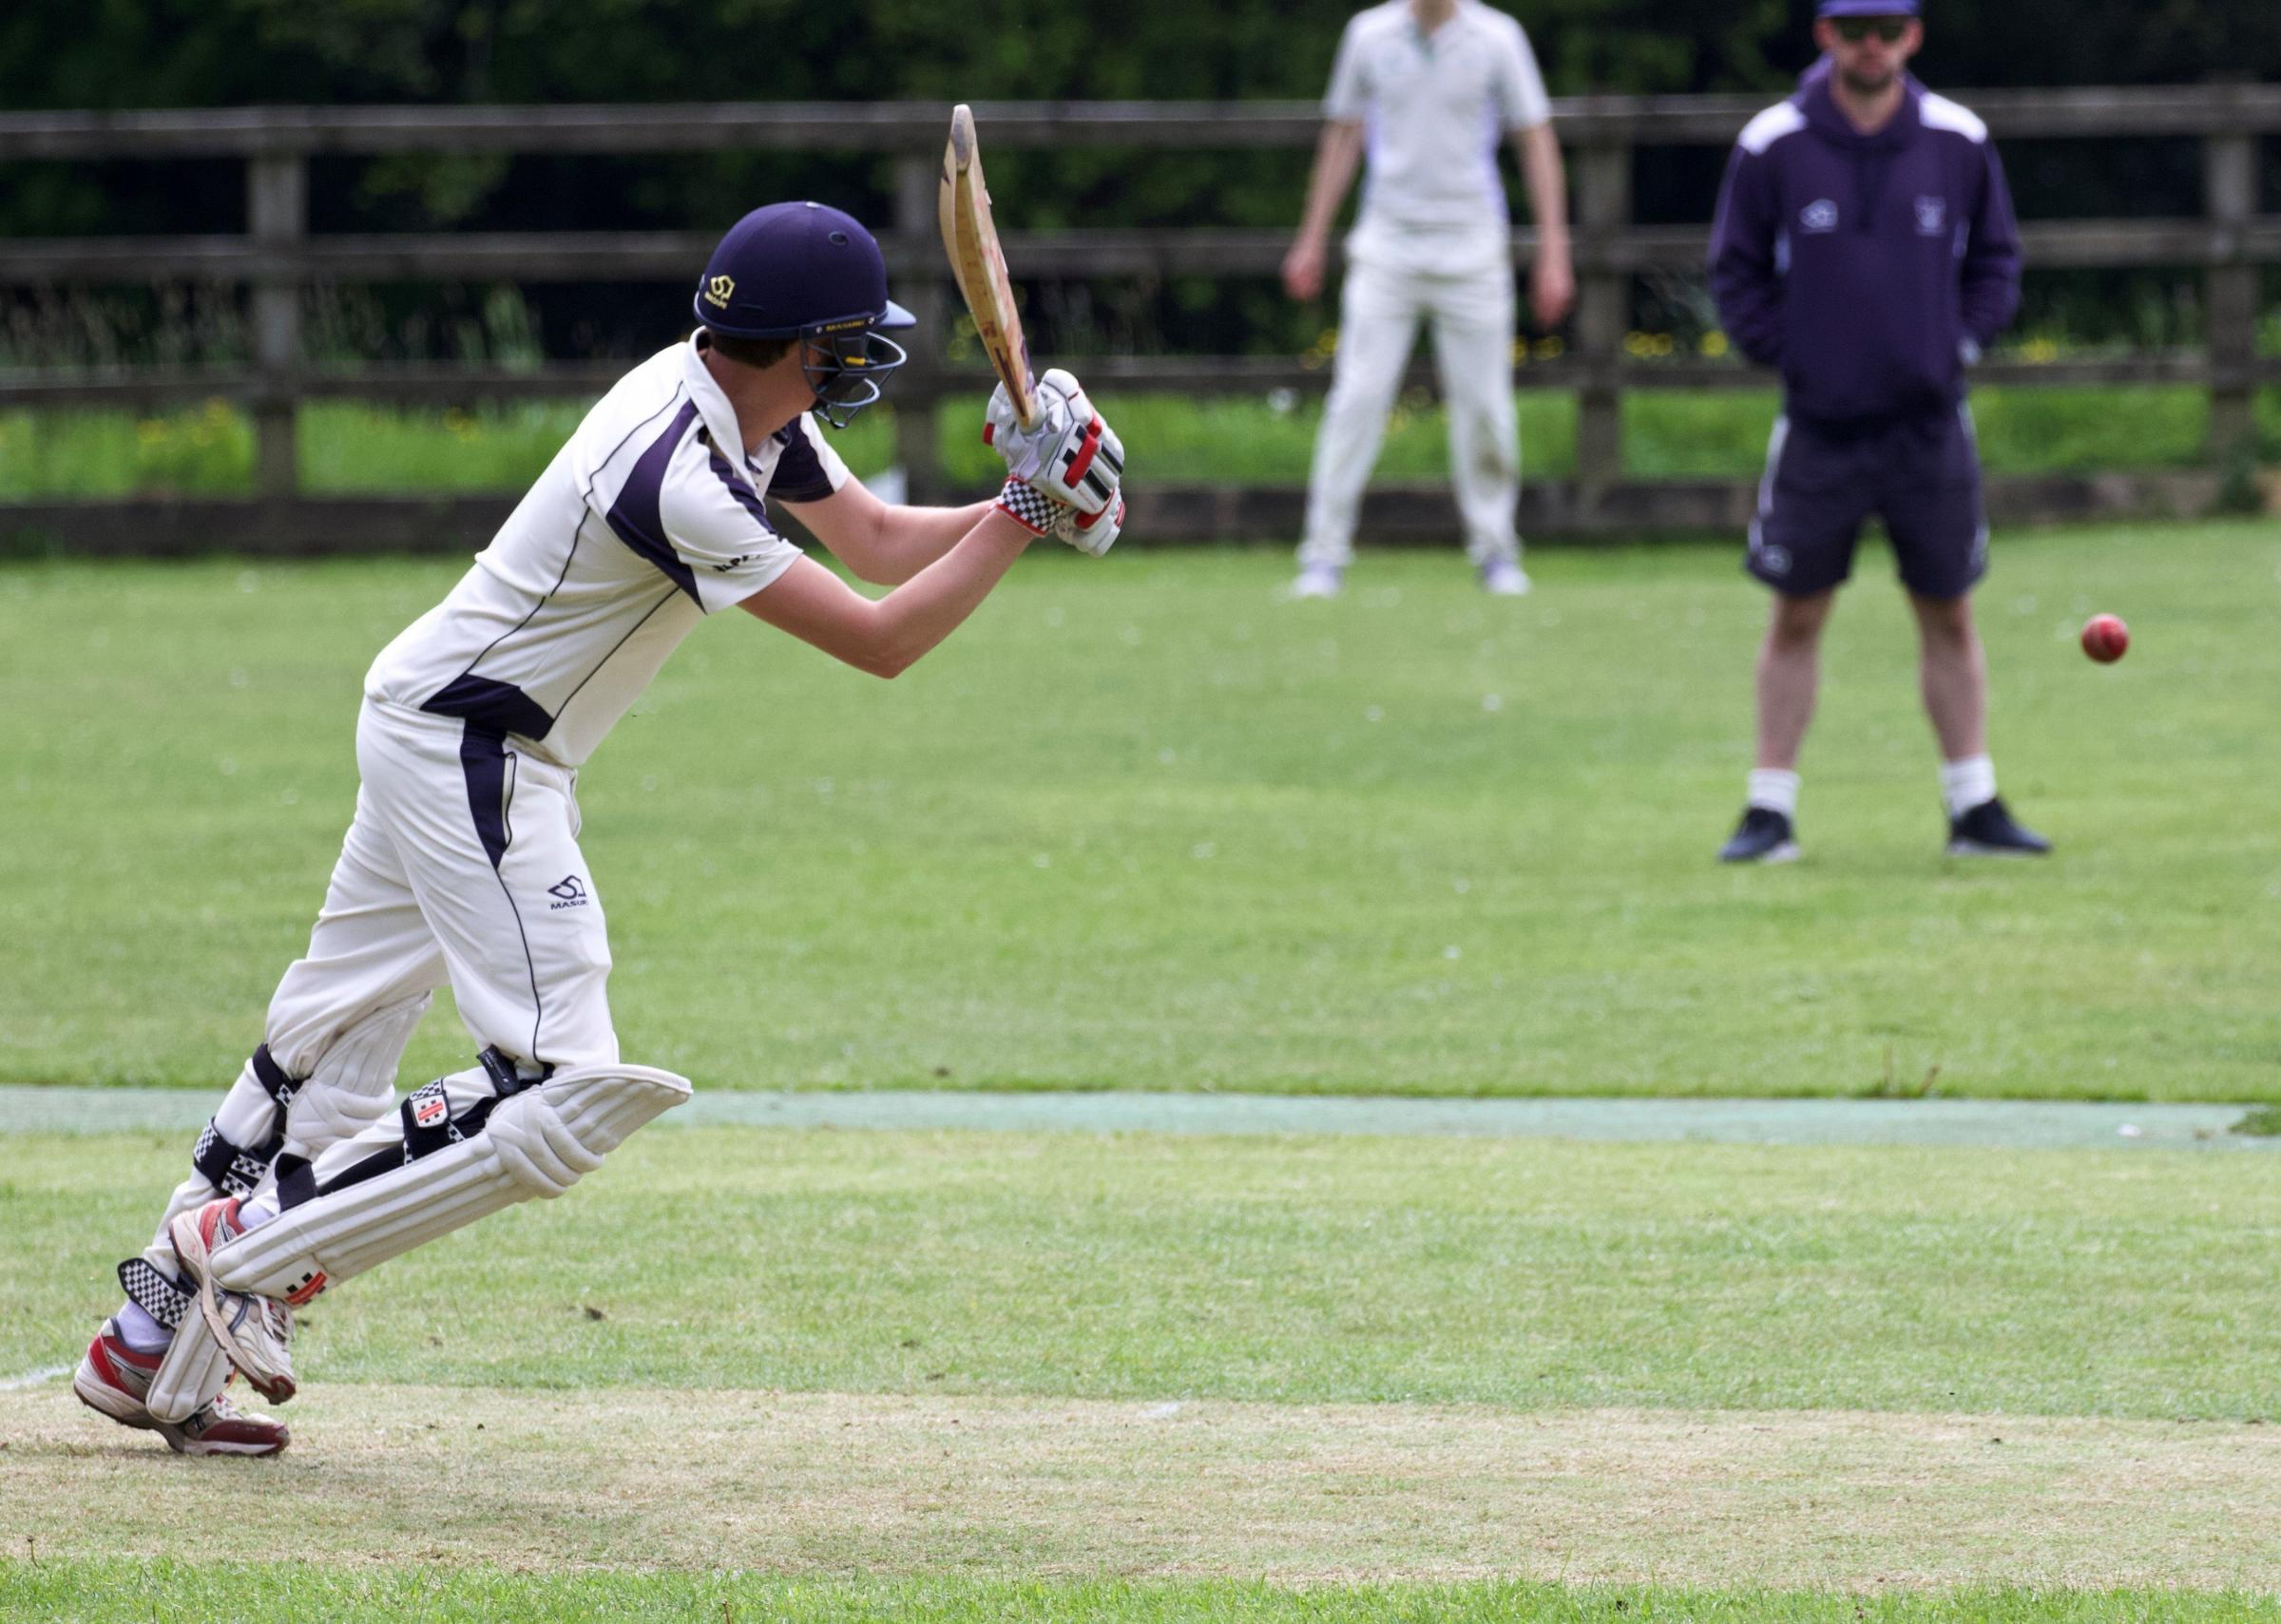 MARVELLOUS INNINGS: Liam Toohill cracked an unbeaten 149 			                 Picture: BETH SCOTT